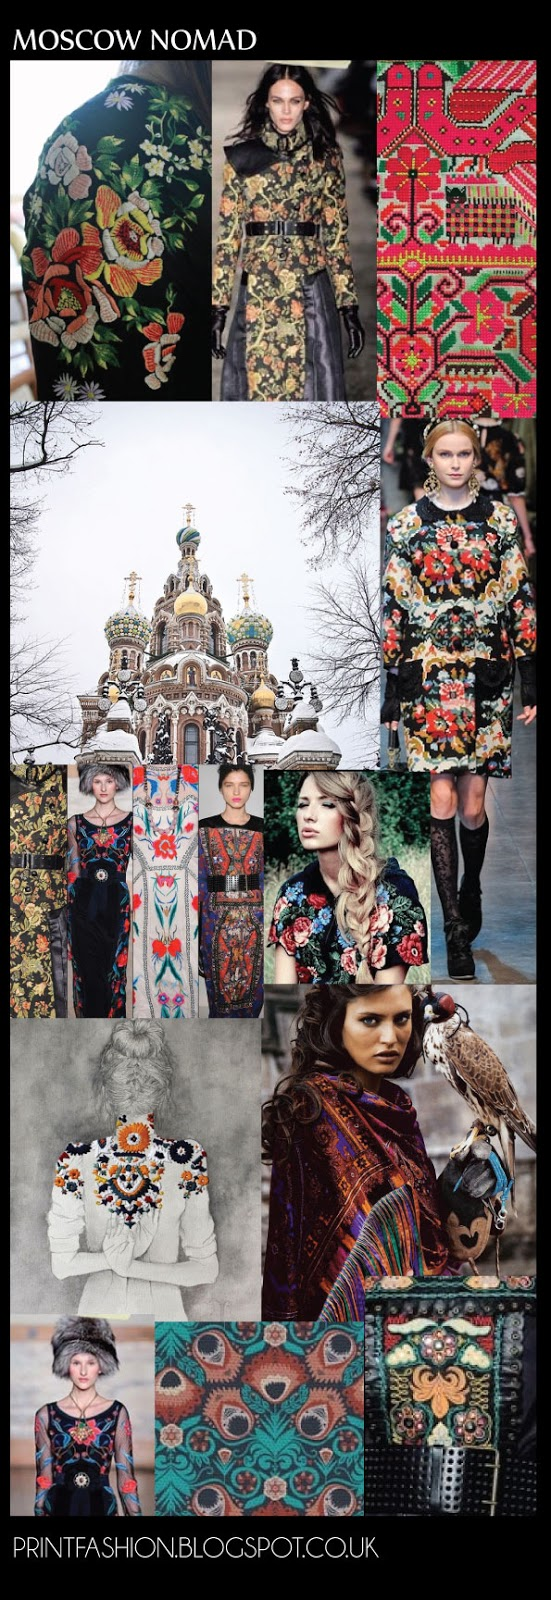 moscow nomad aw13-14 trend